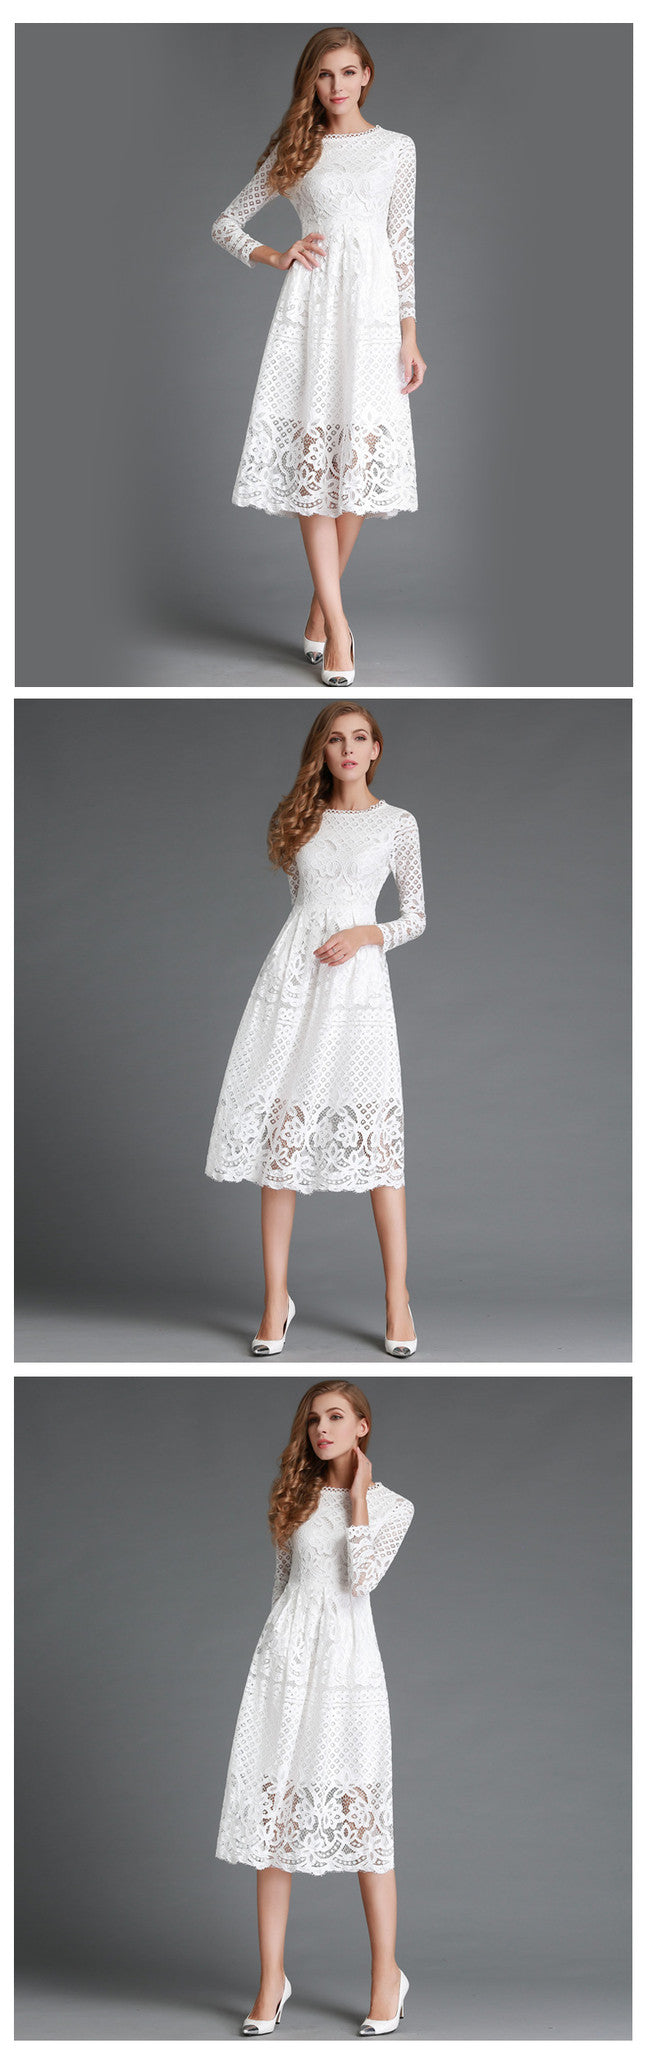 New European 2016 Spring Women's Lace Hollow Out Long Dresses Bohemian Femme Casual Clothing Women Sexy Slim Party Dress